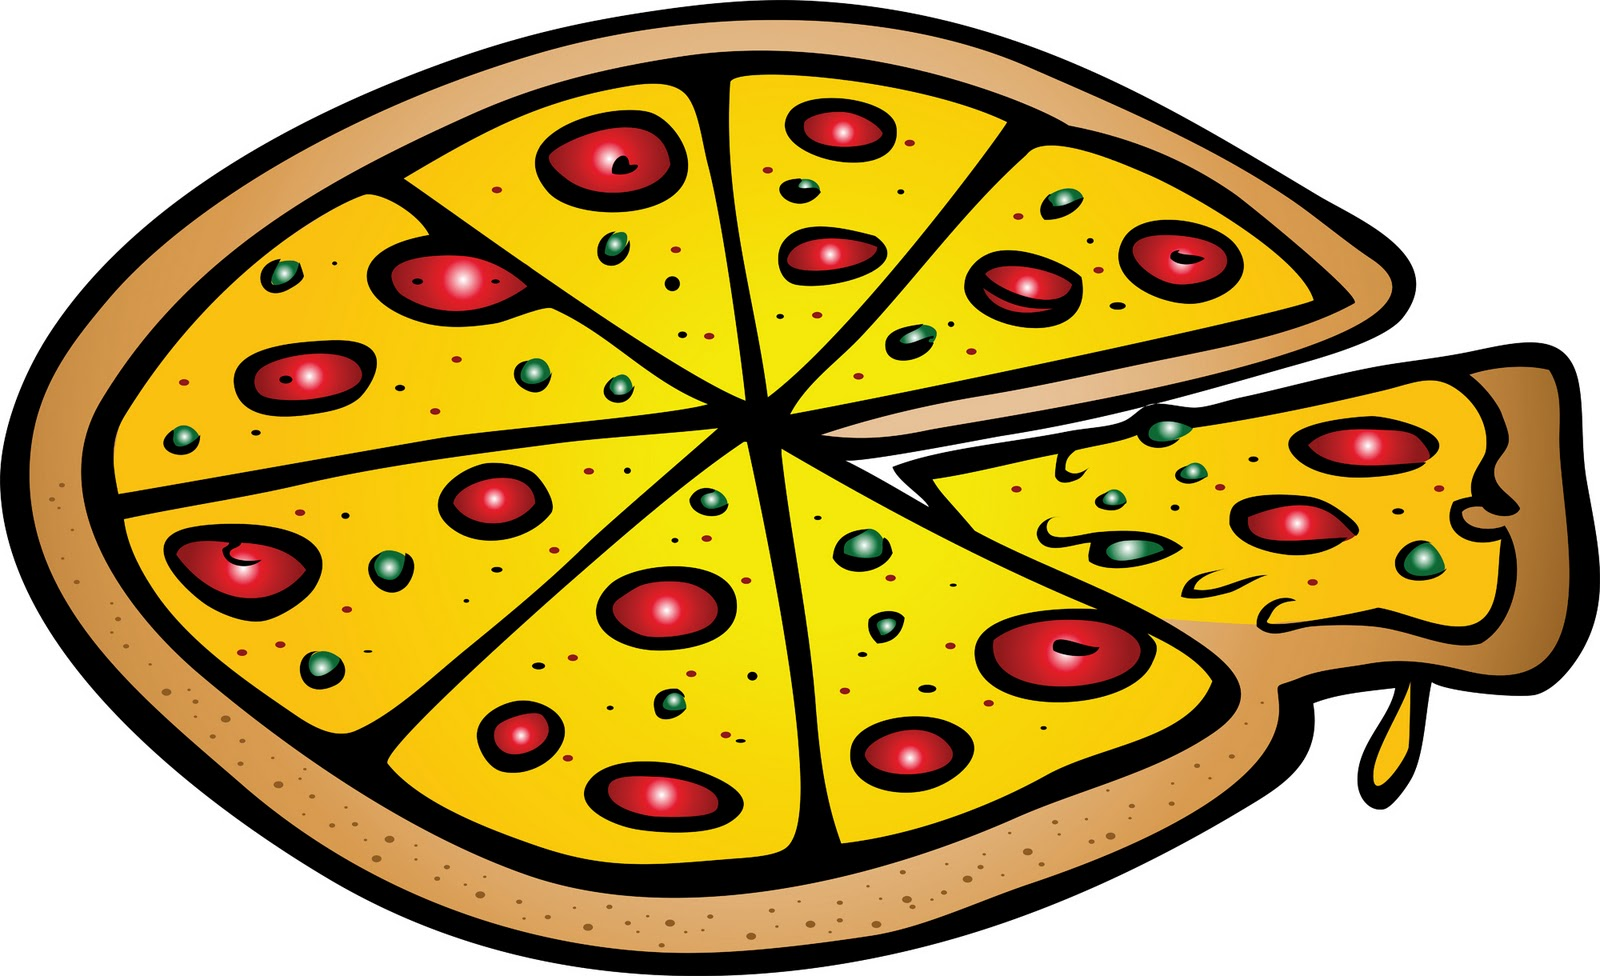 1600x976 Pizza Clip Art Pizza Clipart Photo Niceclipart